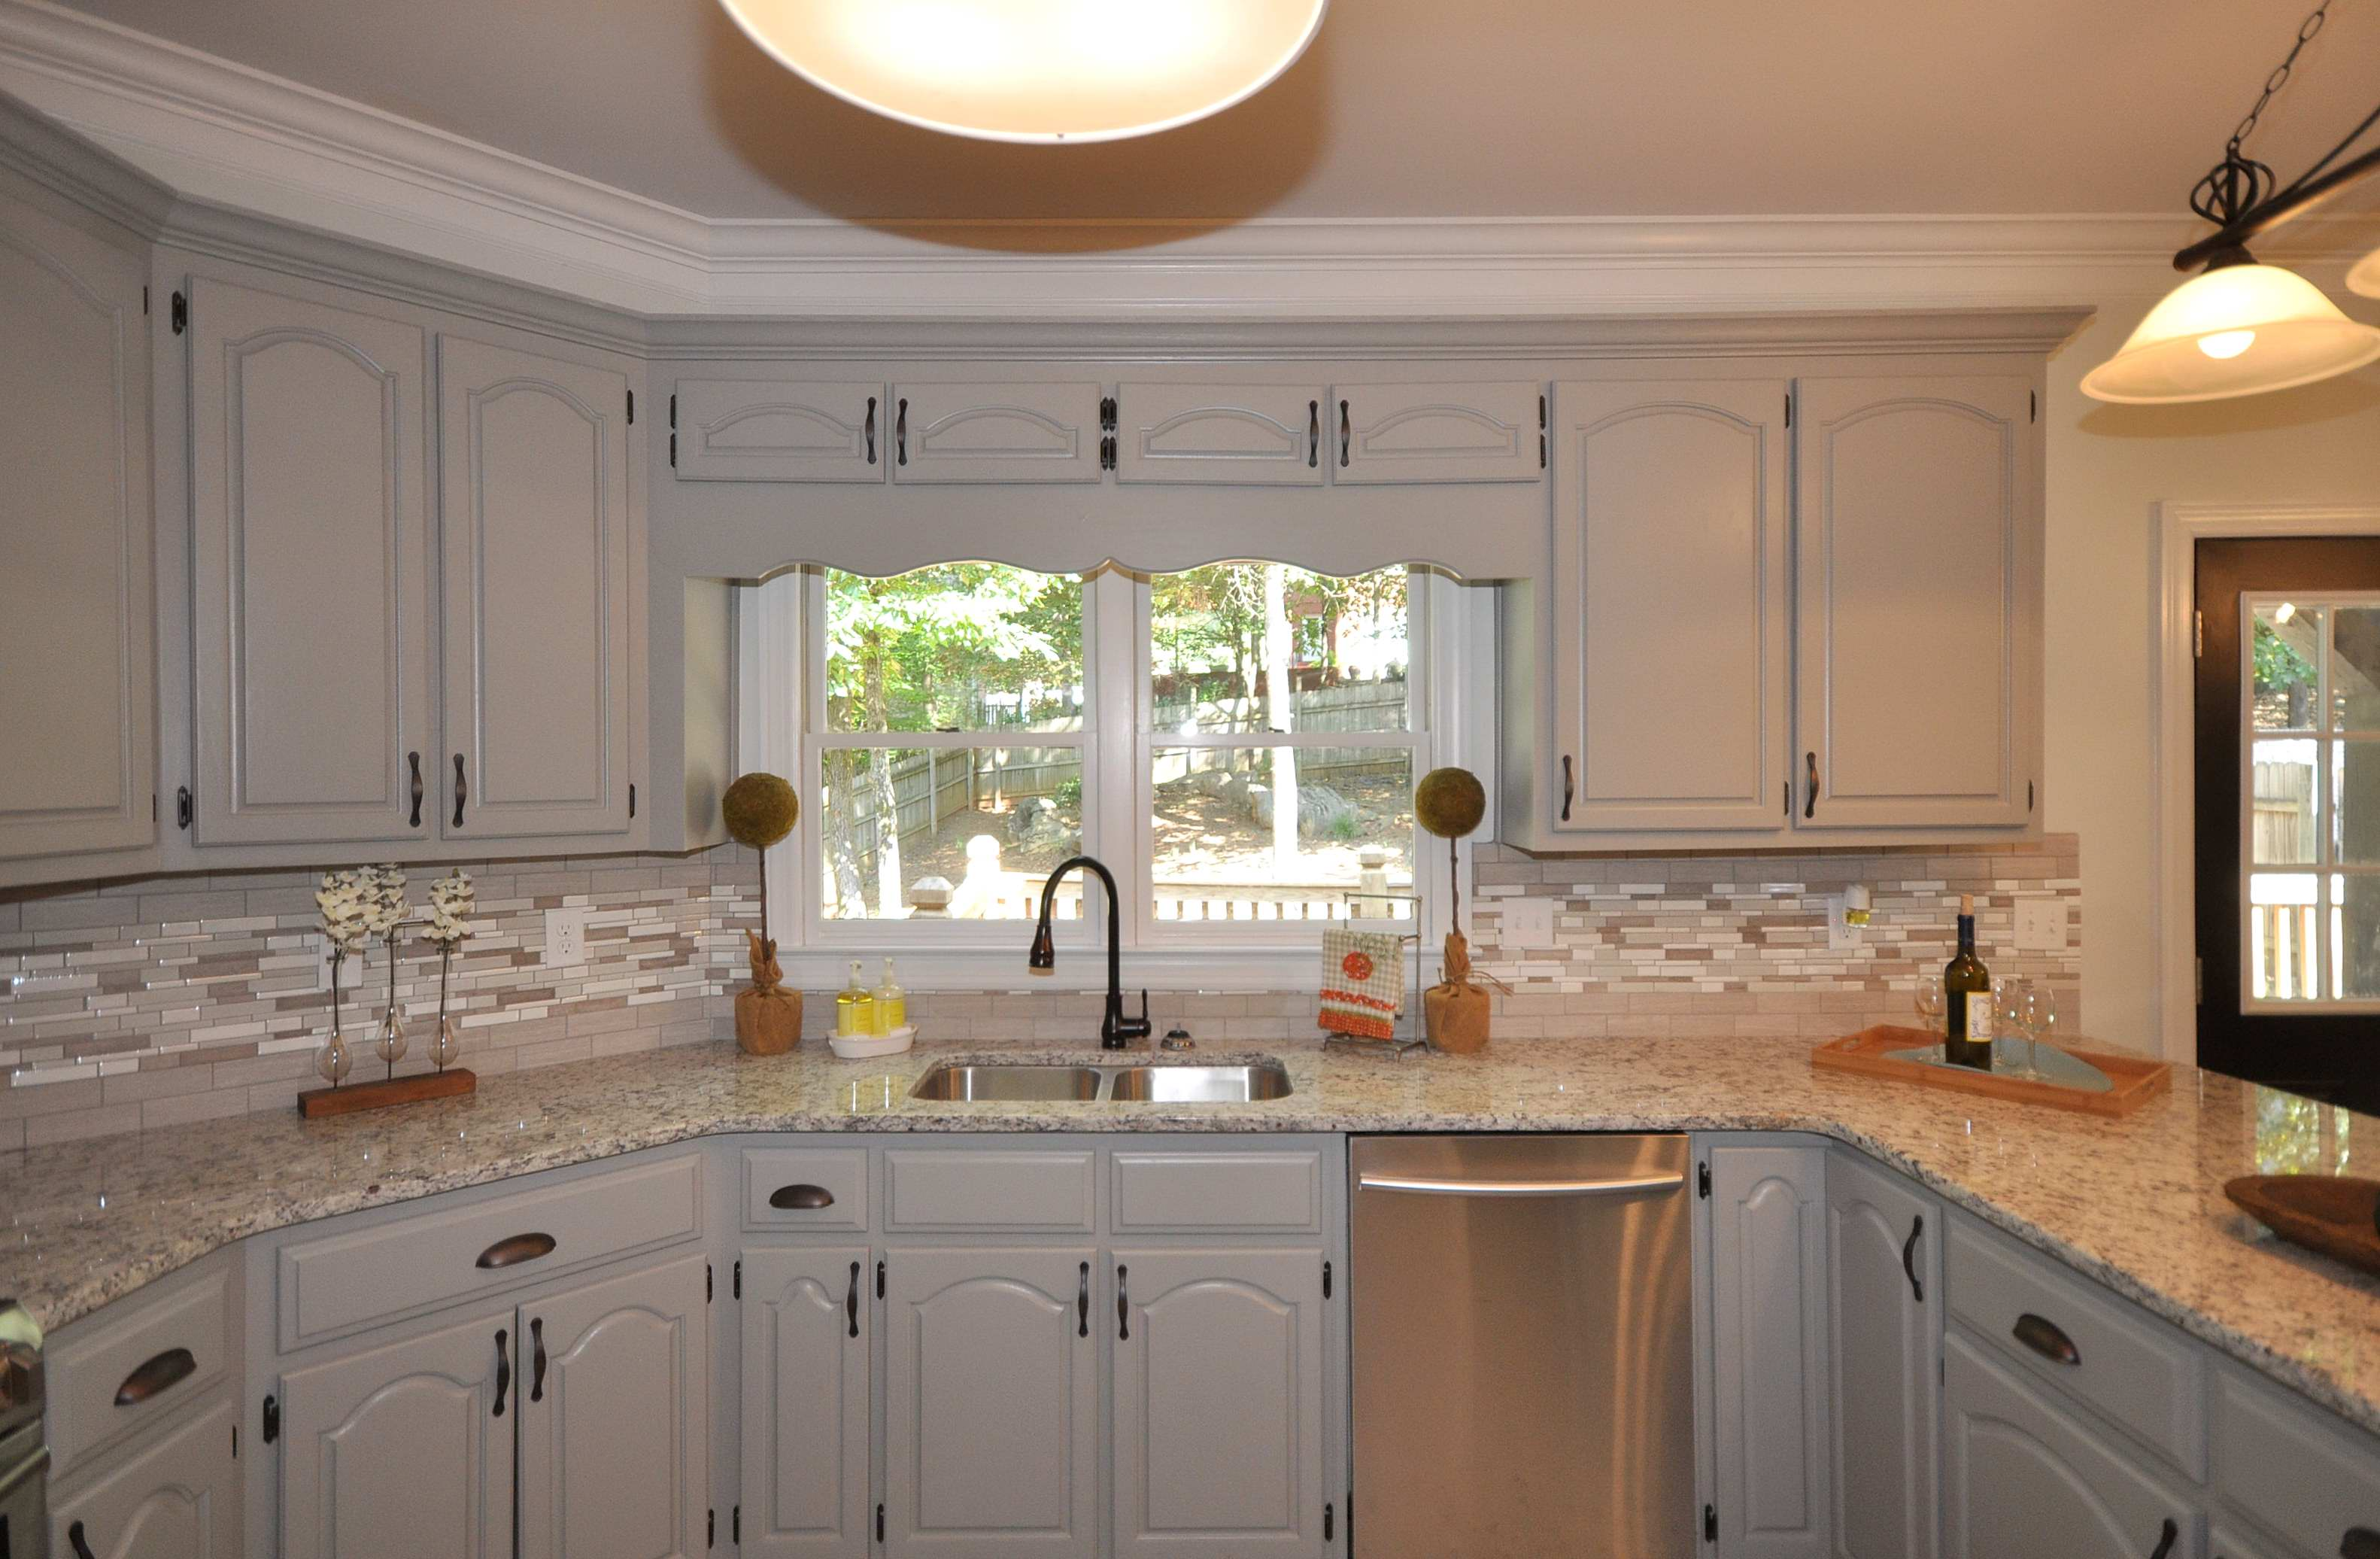 How To Update Kitchen Cabinets Updating Kitchen Cabinets Without Replacing Them Home Design